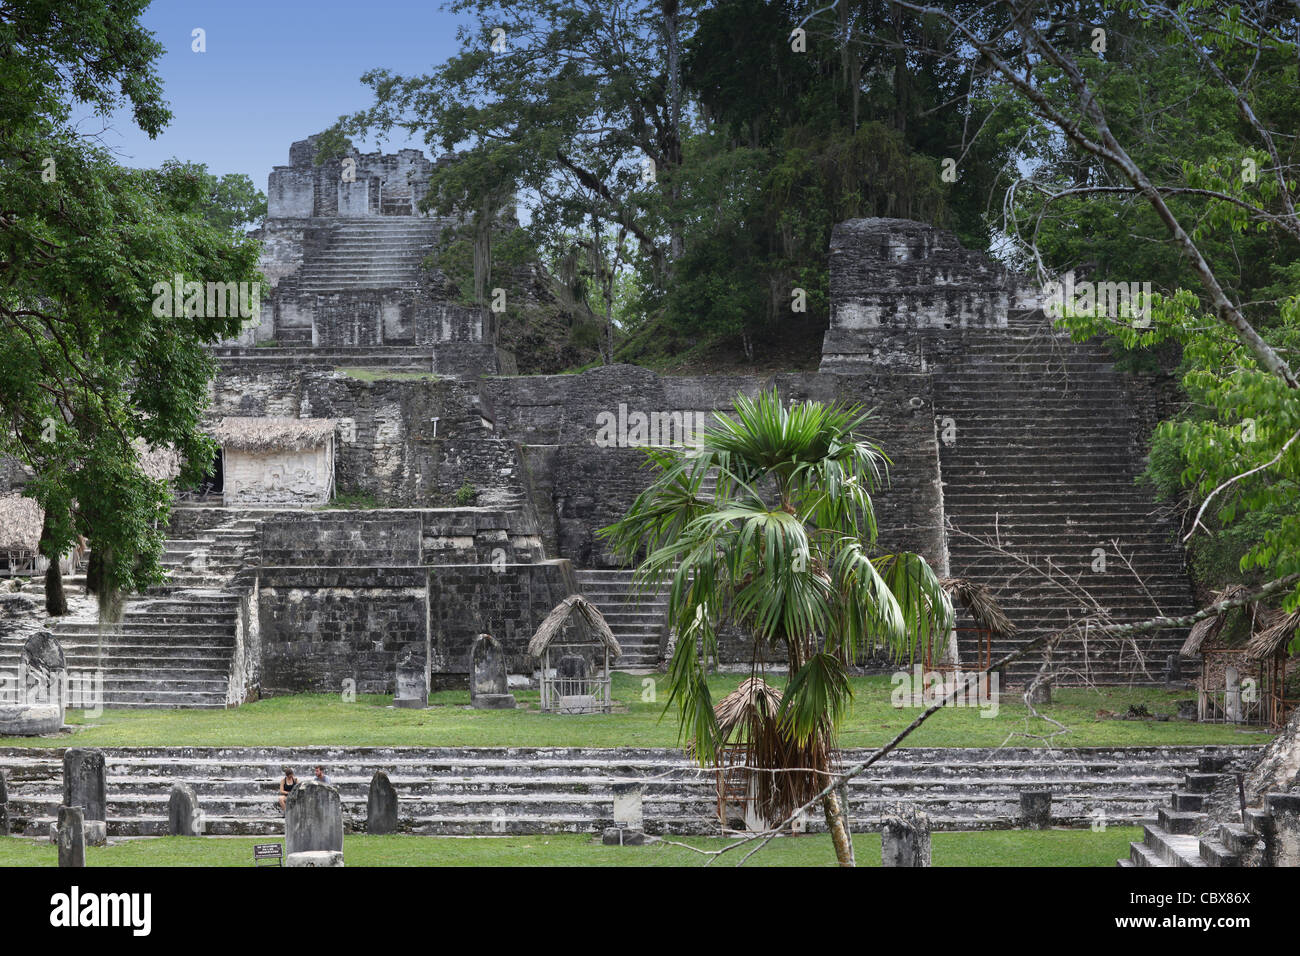 Ancient Maya buildings and temples, Tikal, Guatemala - Stock Image